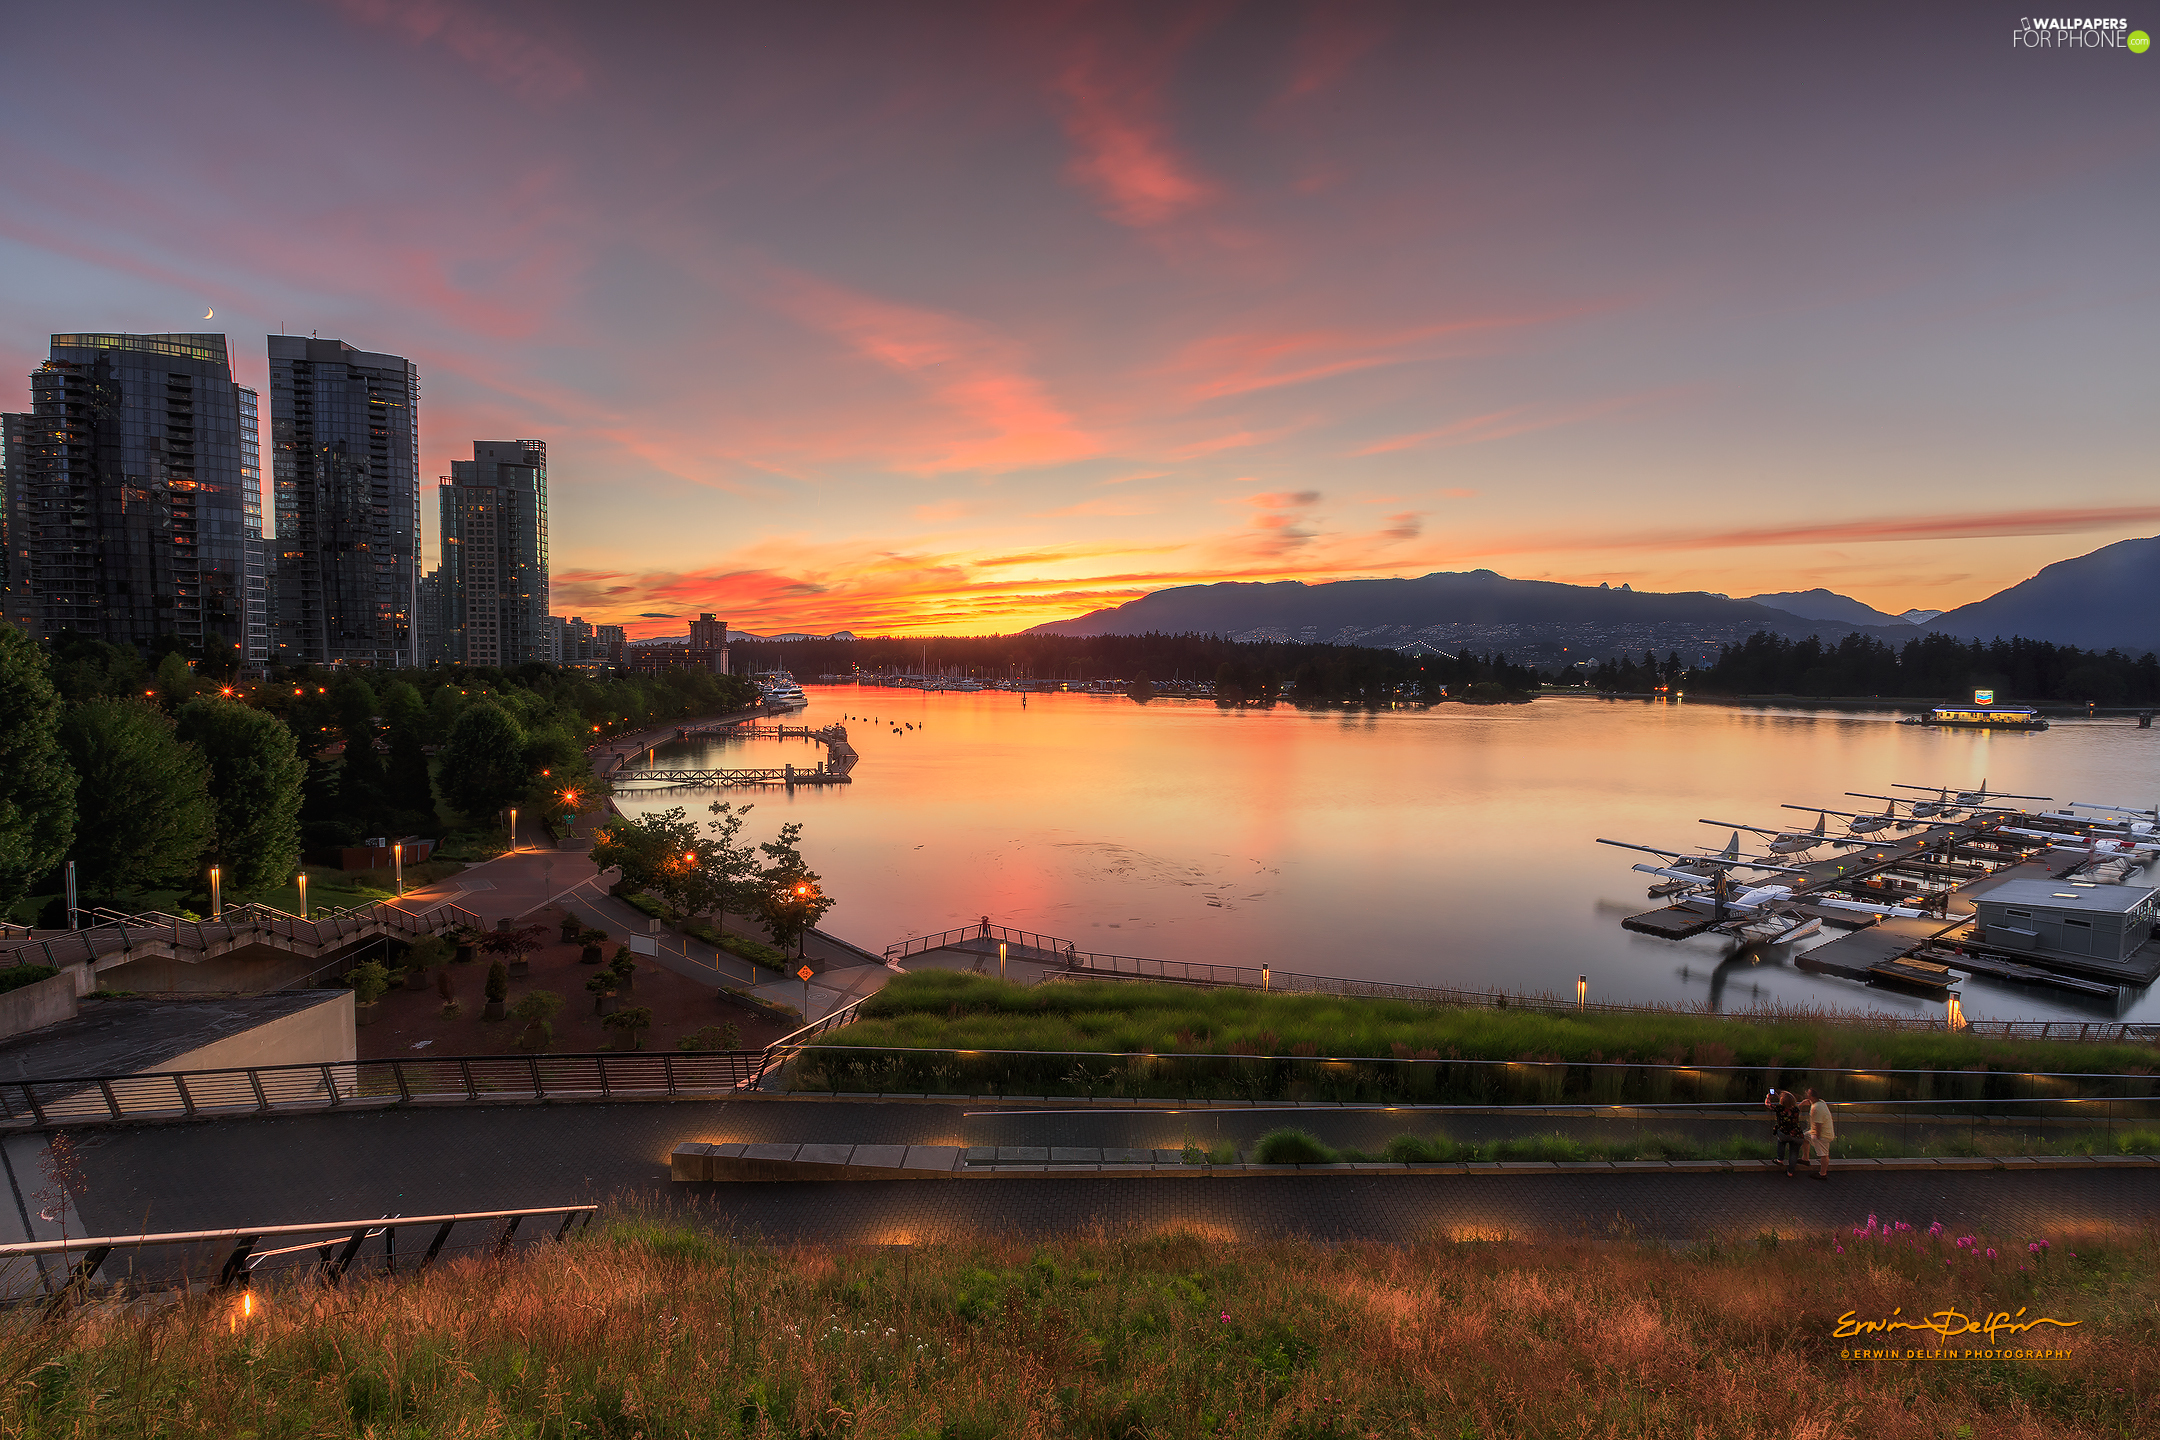 Harbour, Gulf, Coal Harbour, viewes, trees, Vancouver, clouds, Sailboats, Canada, Sunrise, Mountains, skyscrapers